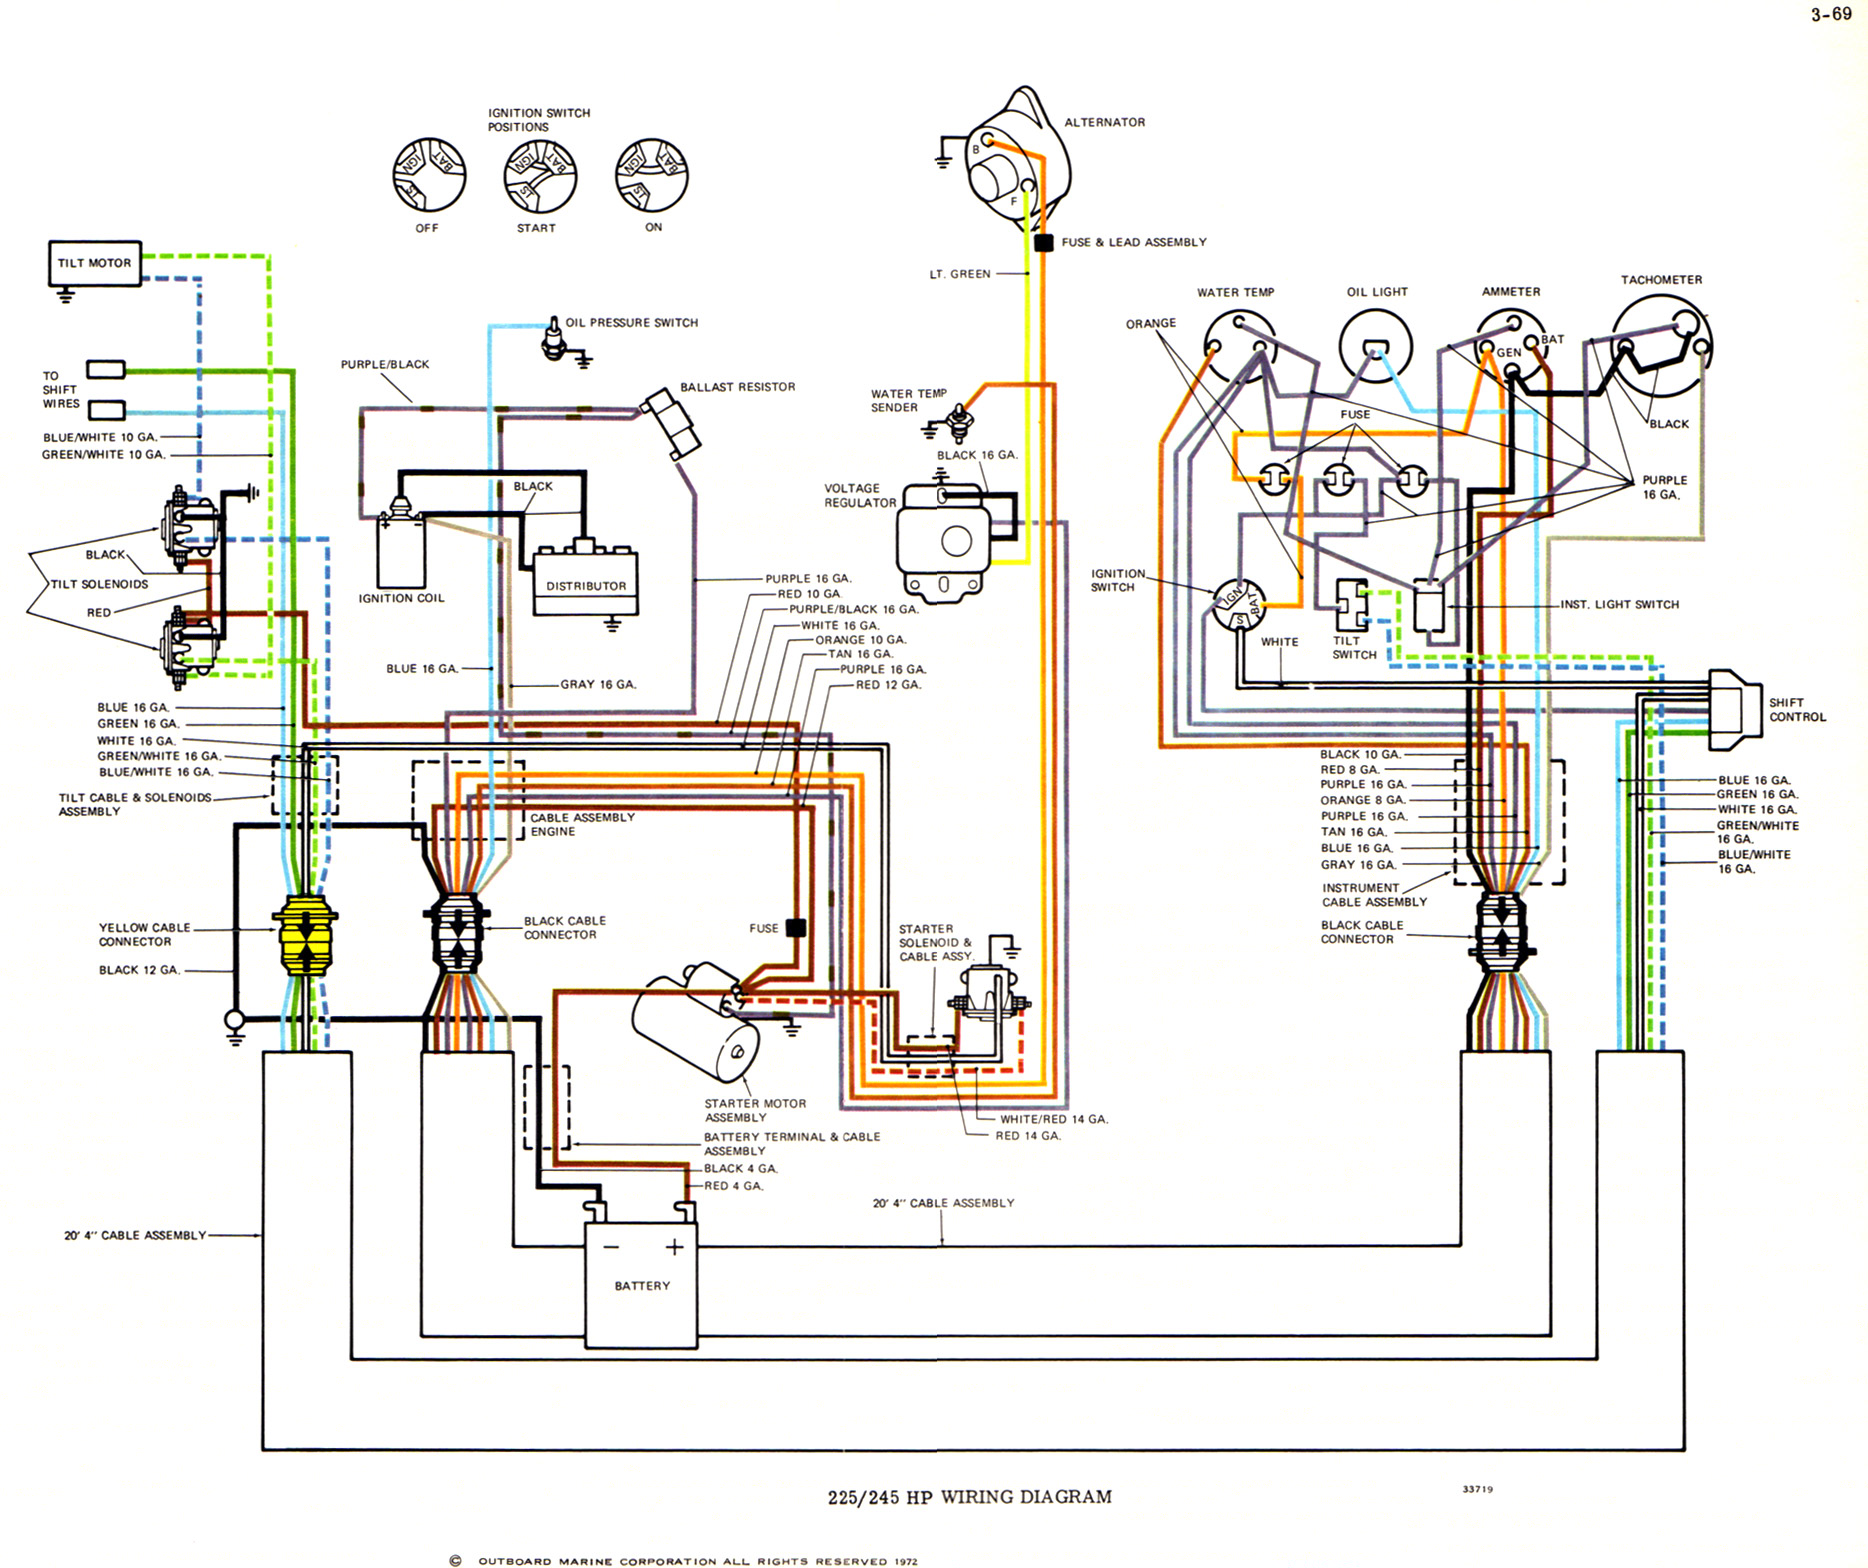 73_OMC_V8_all_big marine tachometer wiring diagram sun tachometer wiring diagram Yamaha Outboard Wiring Schematic at readyjetset.co